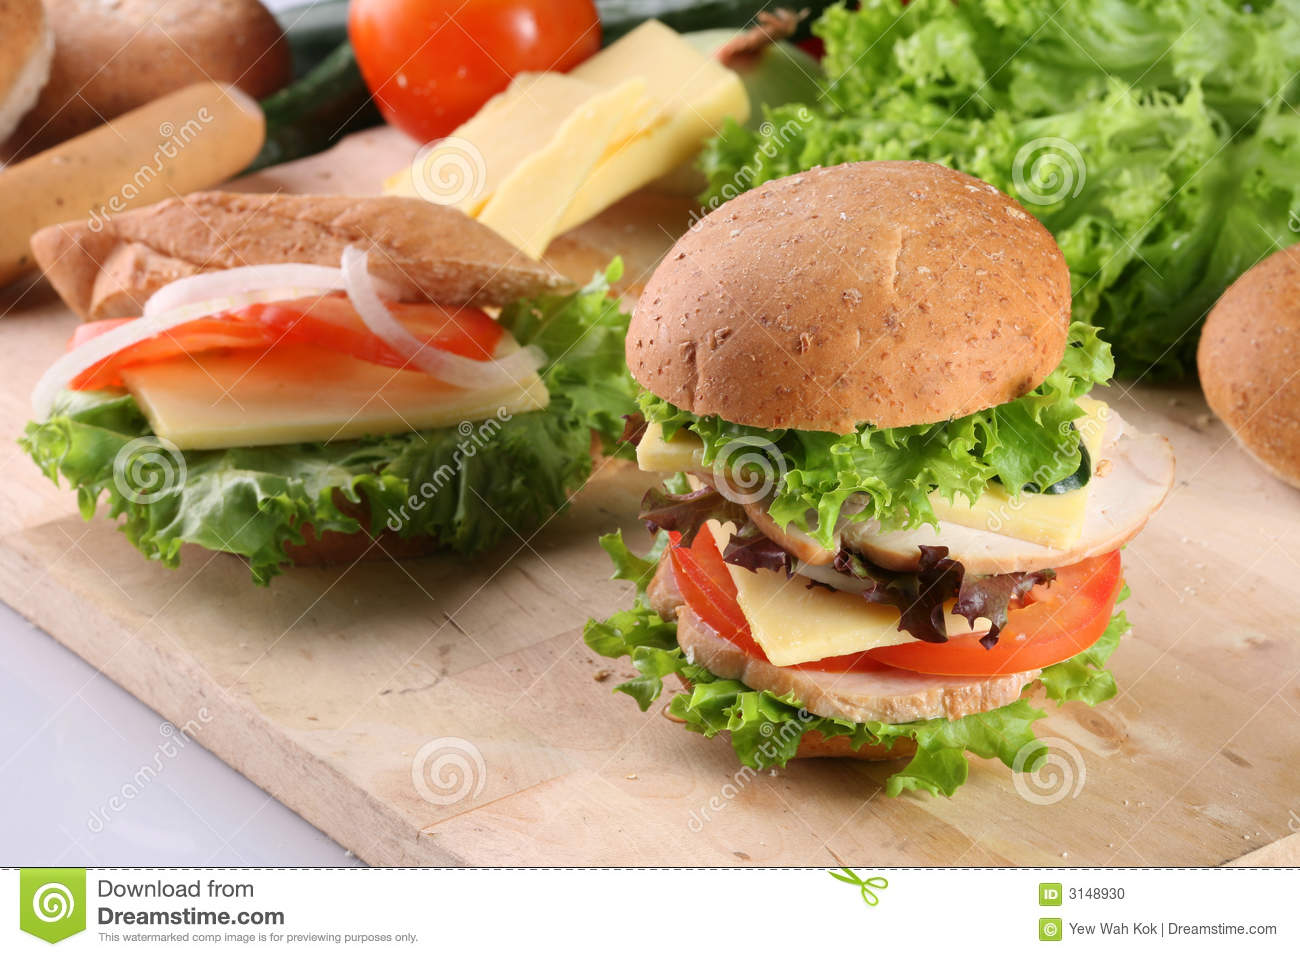 Burger and sandwich